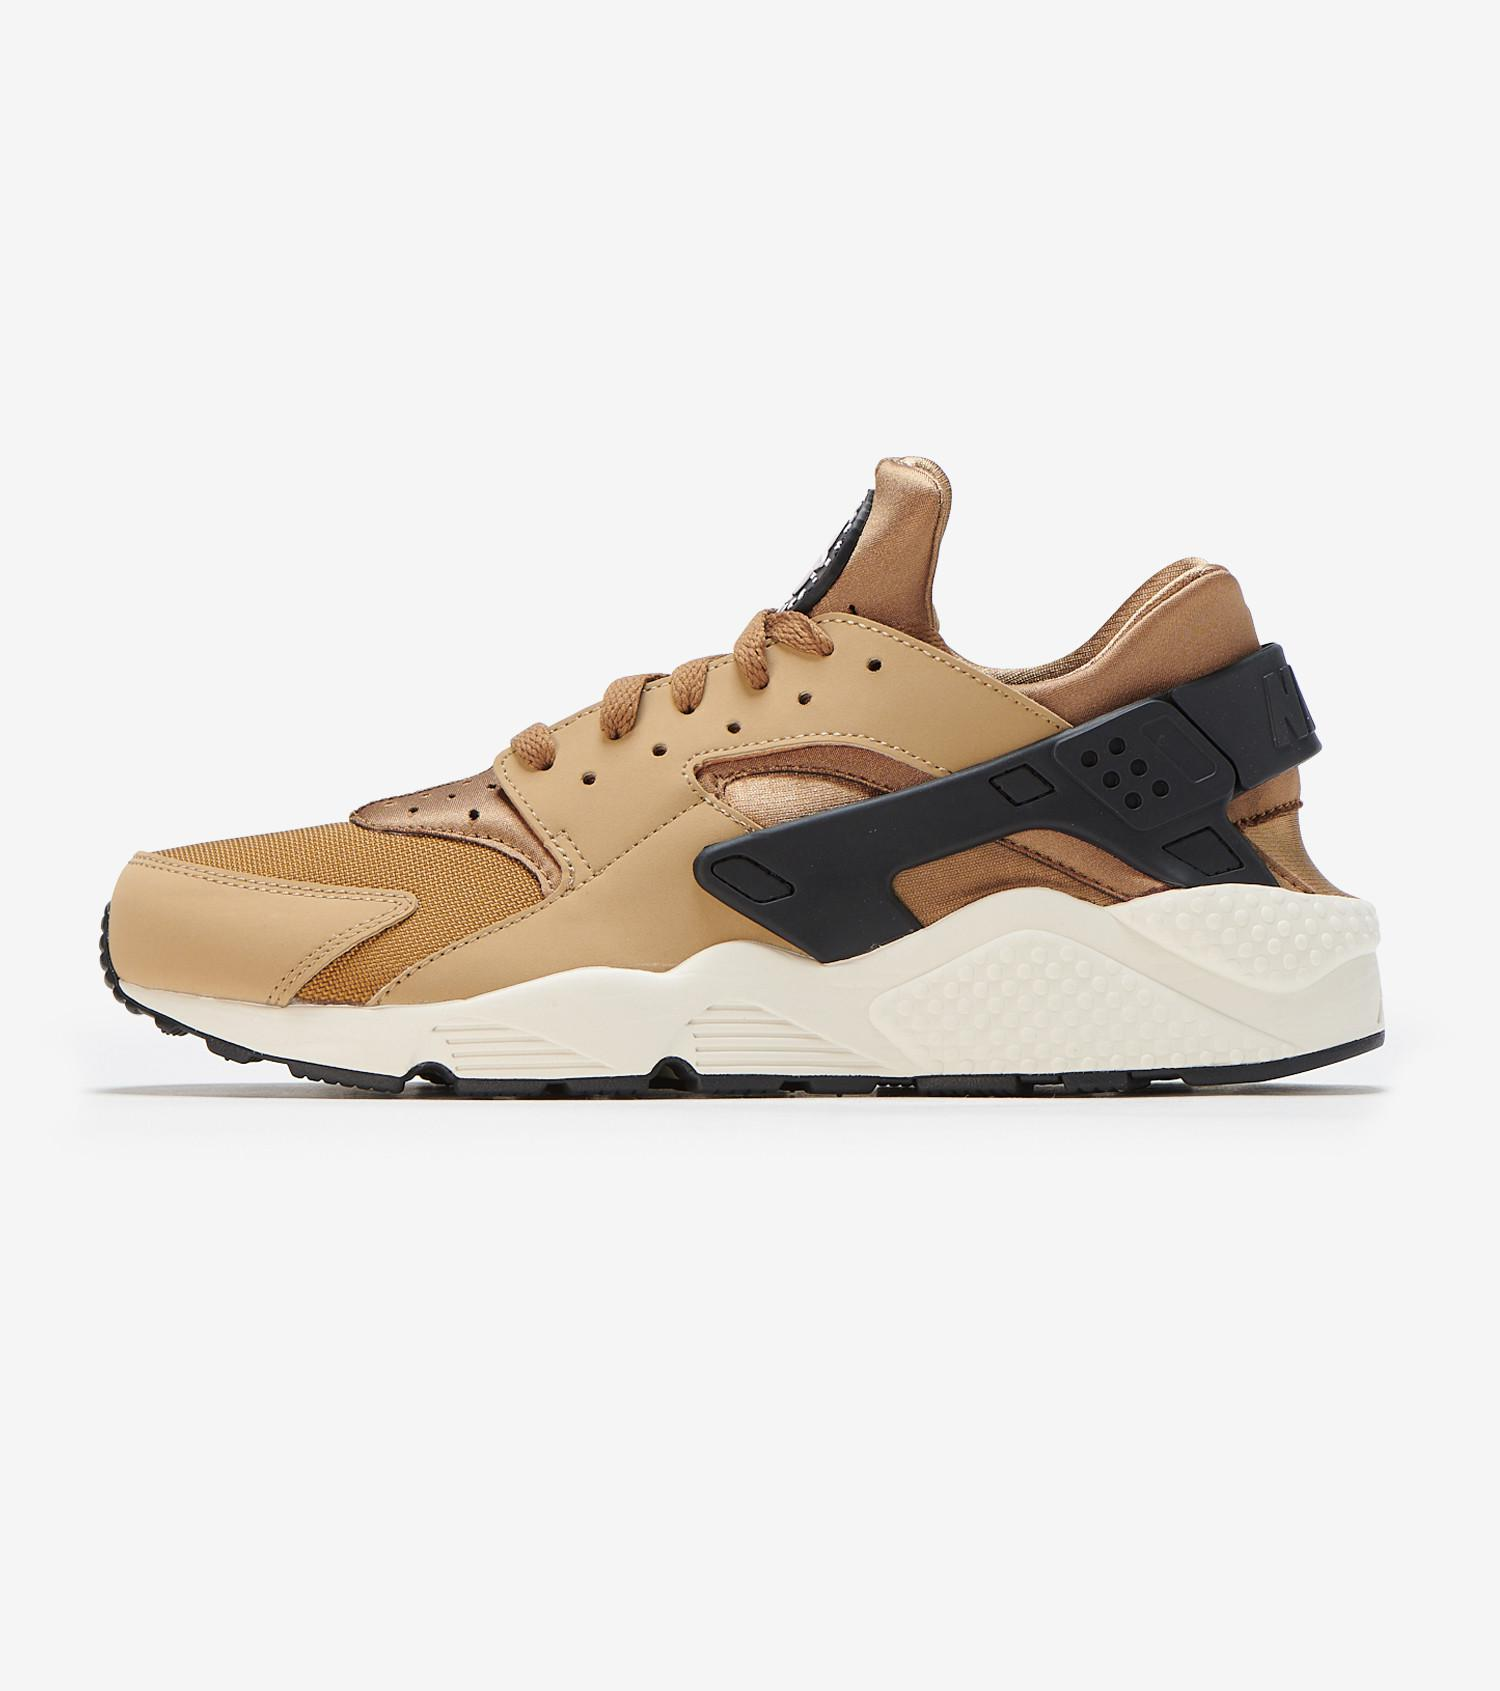 0bad29cbf2f Lyst - Nike Air Huarache in Natural for Men